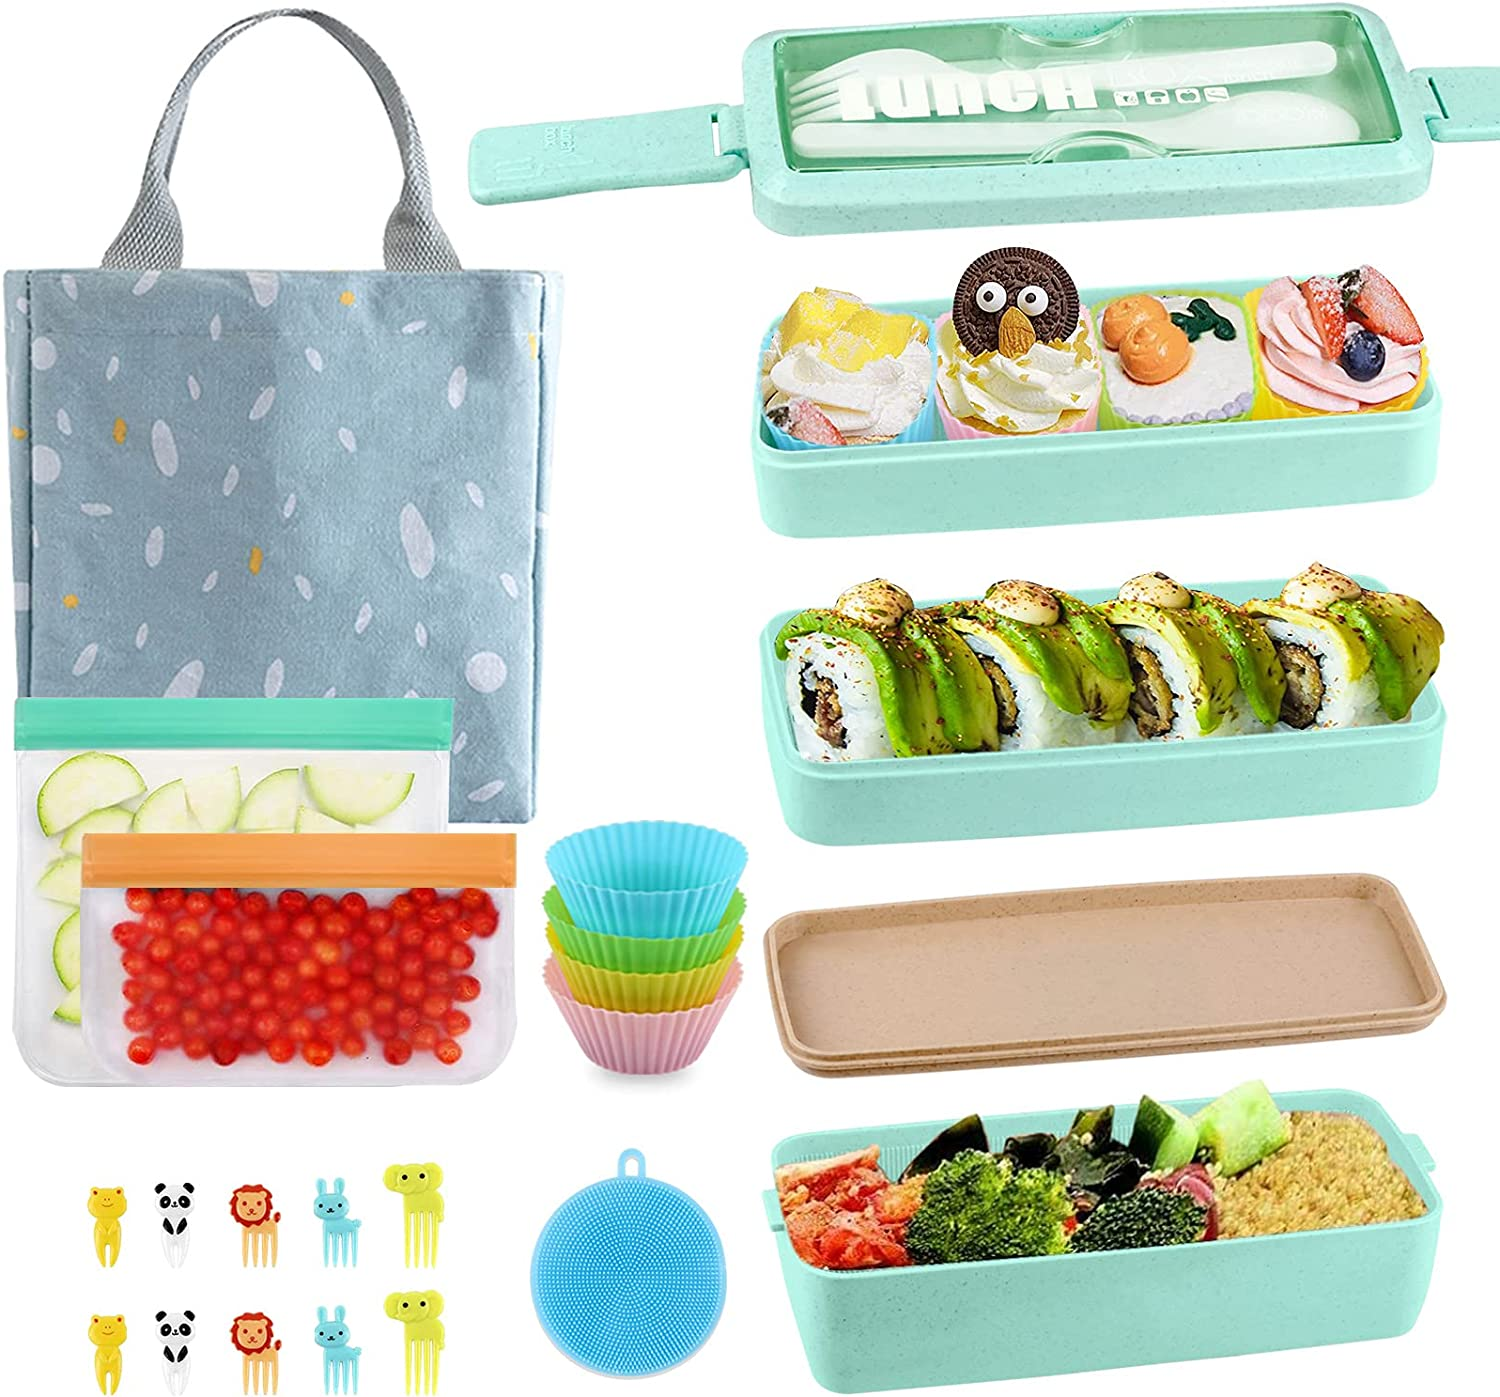 Bento Max 83% OFF Box Japanese Lunch Kit 19 3 Virginia Beach Mall PCS Layer Leak Stackable